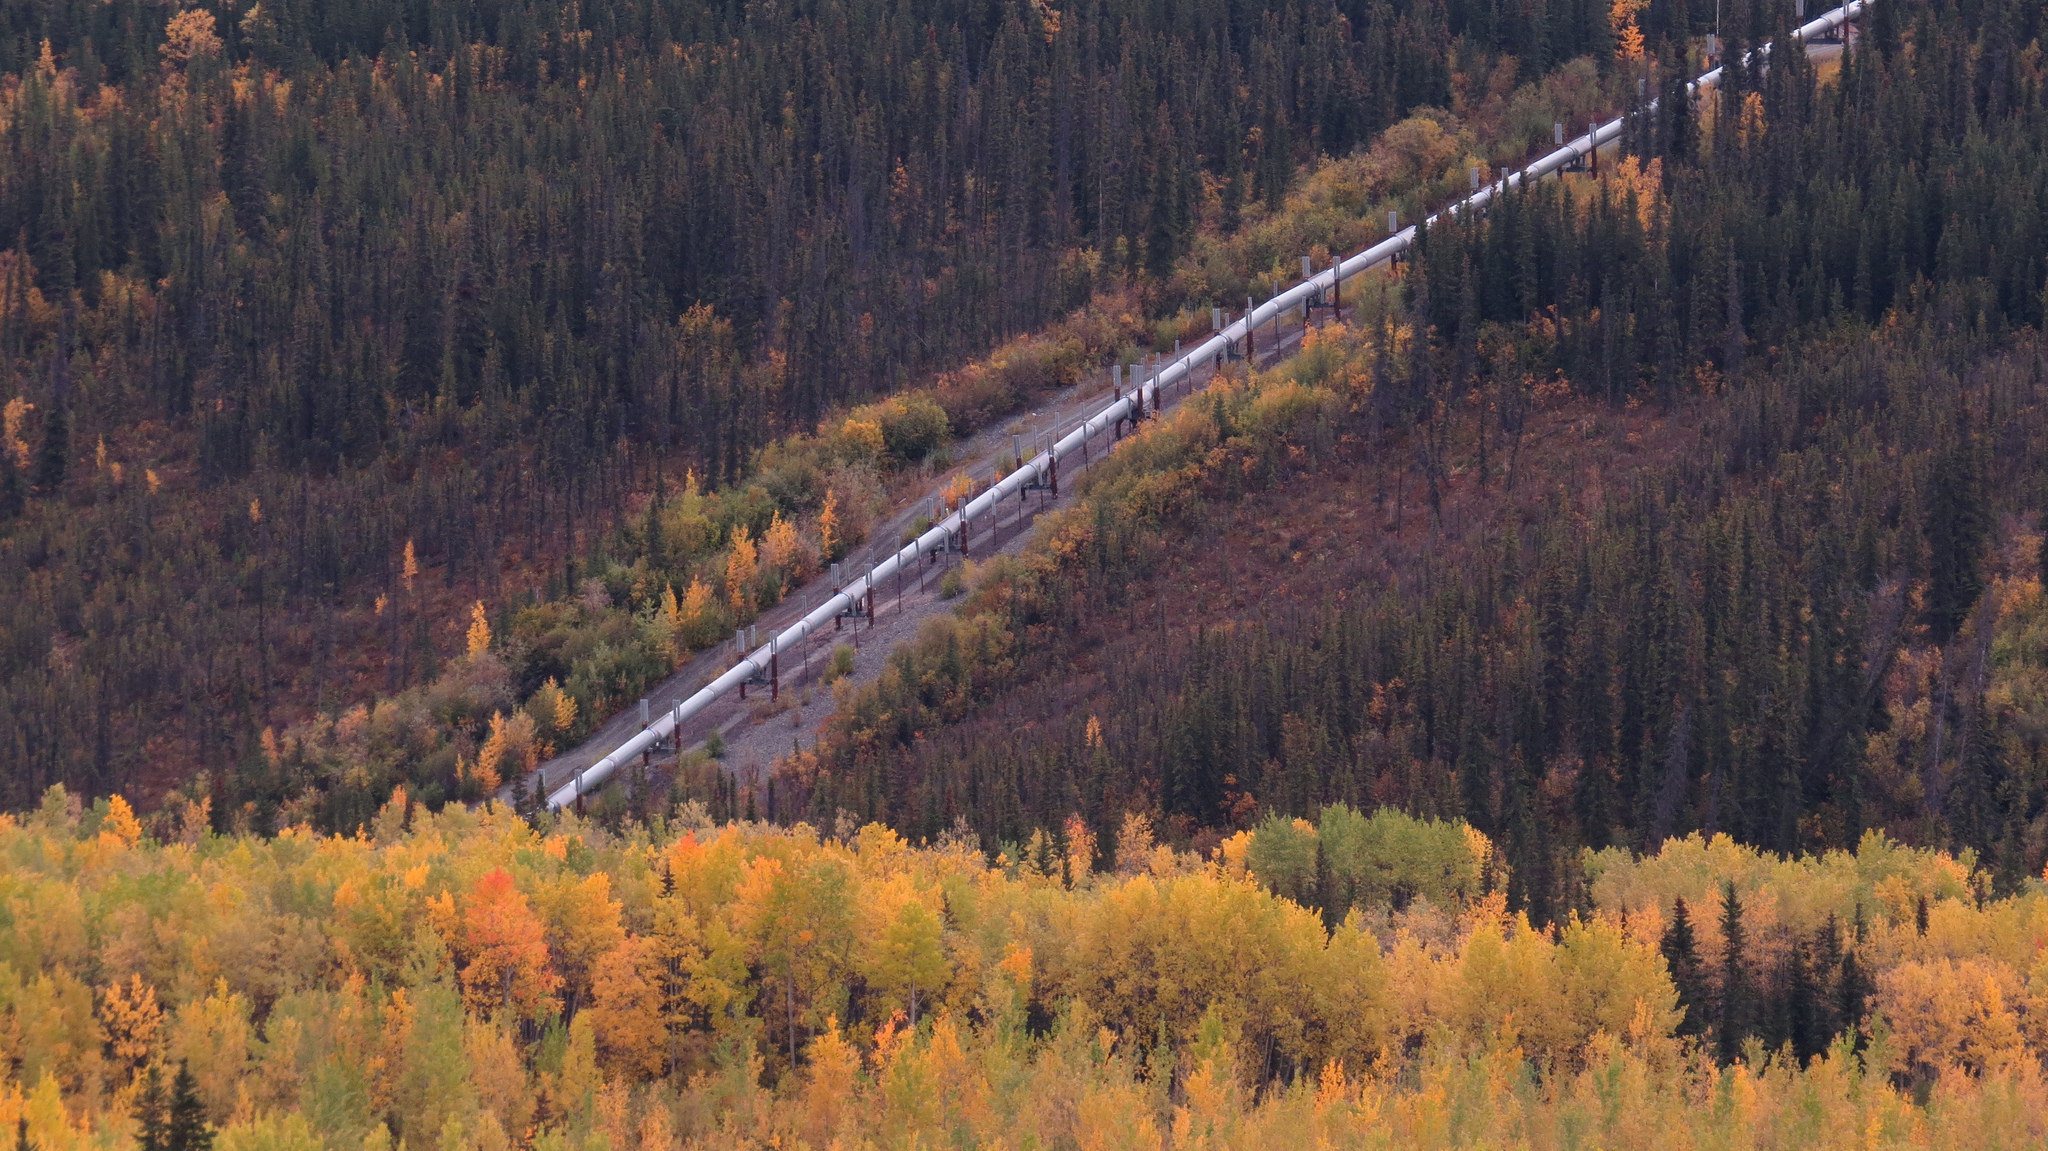 An oil pipeline near the Copper River in Alaska.  Photo: Luke Jones.